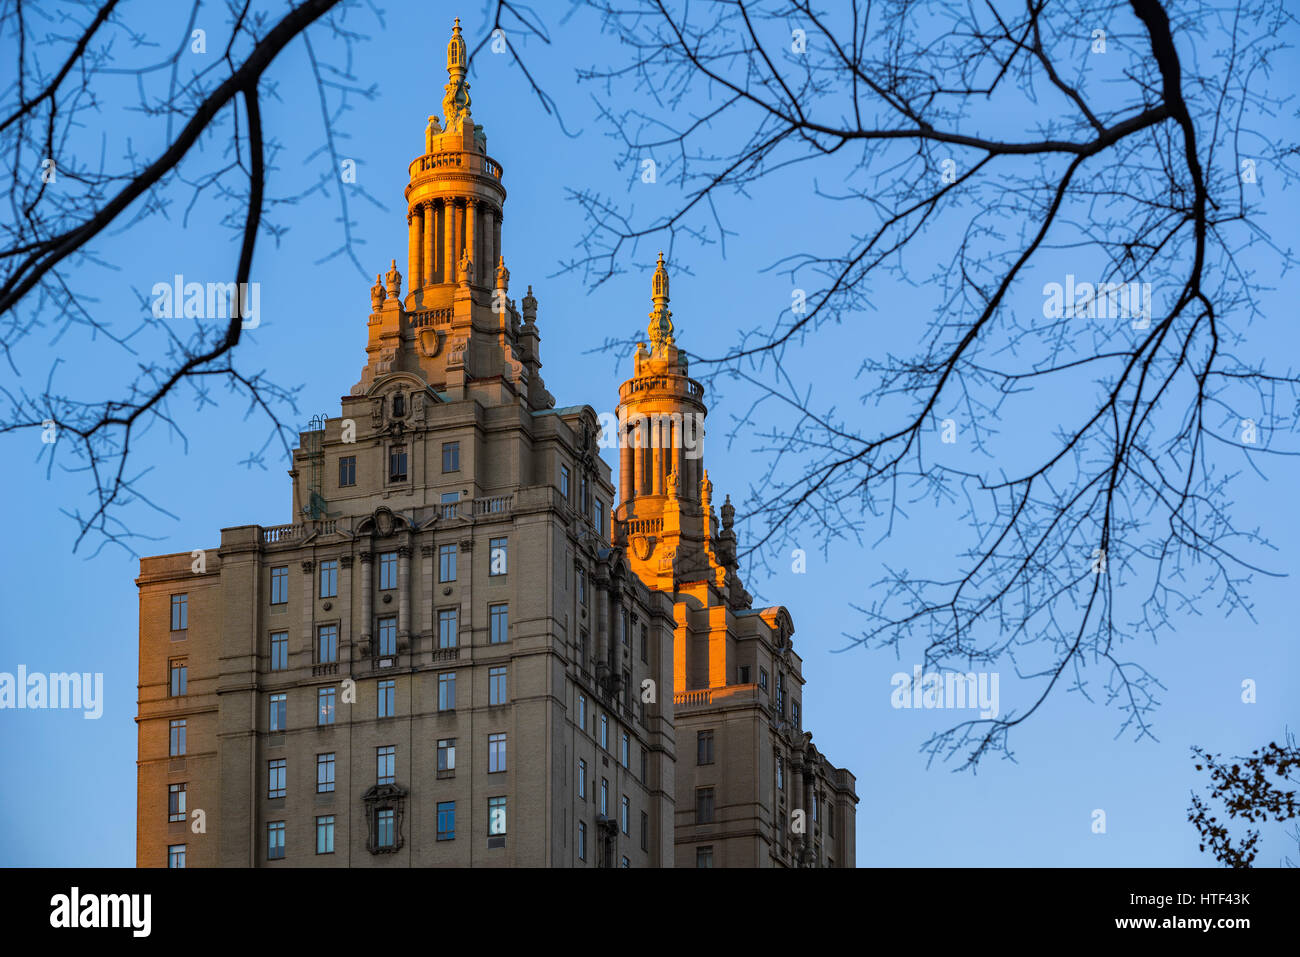 Last sunset light on the two towers of the San Remo apartment building. Central Park West, Upper West Side, Manhattan, - Stock Image